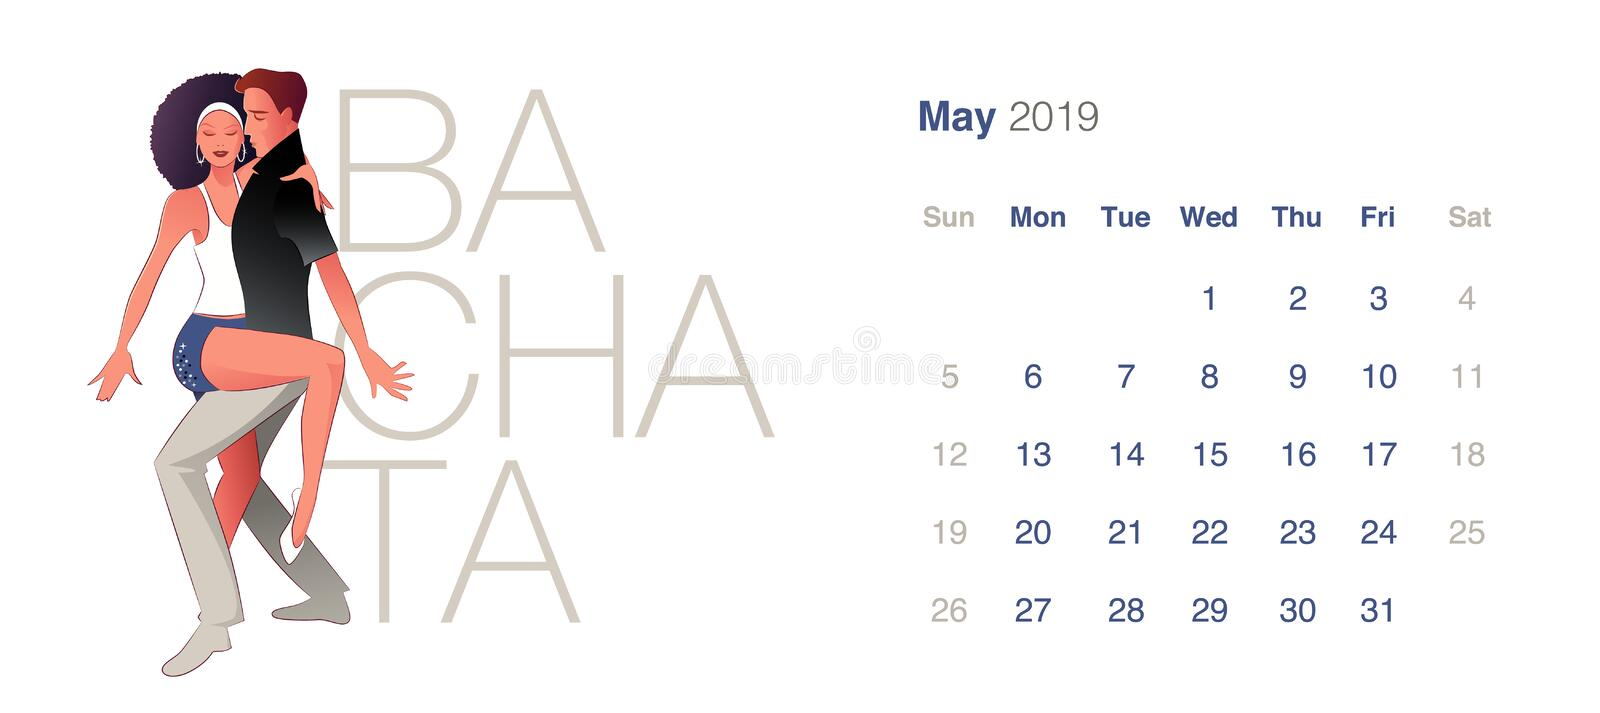 2019 Dance Calendar. May. Young couple dancing sensual Bachata. On white background stock illustration